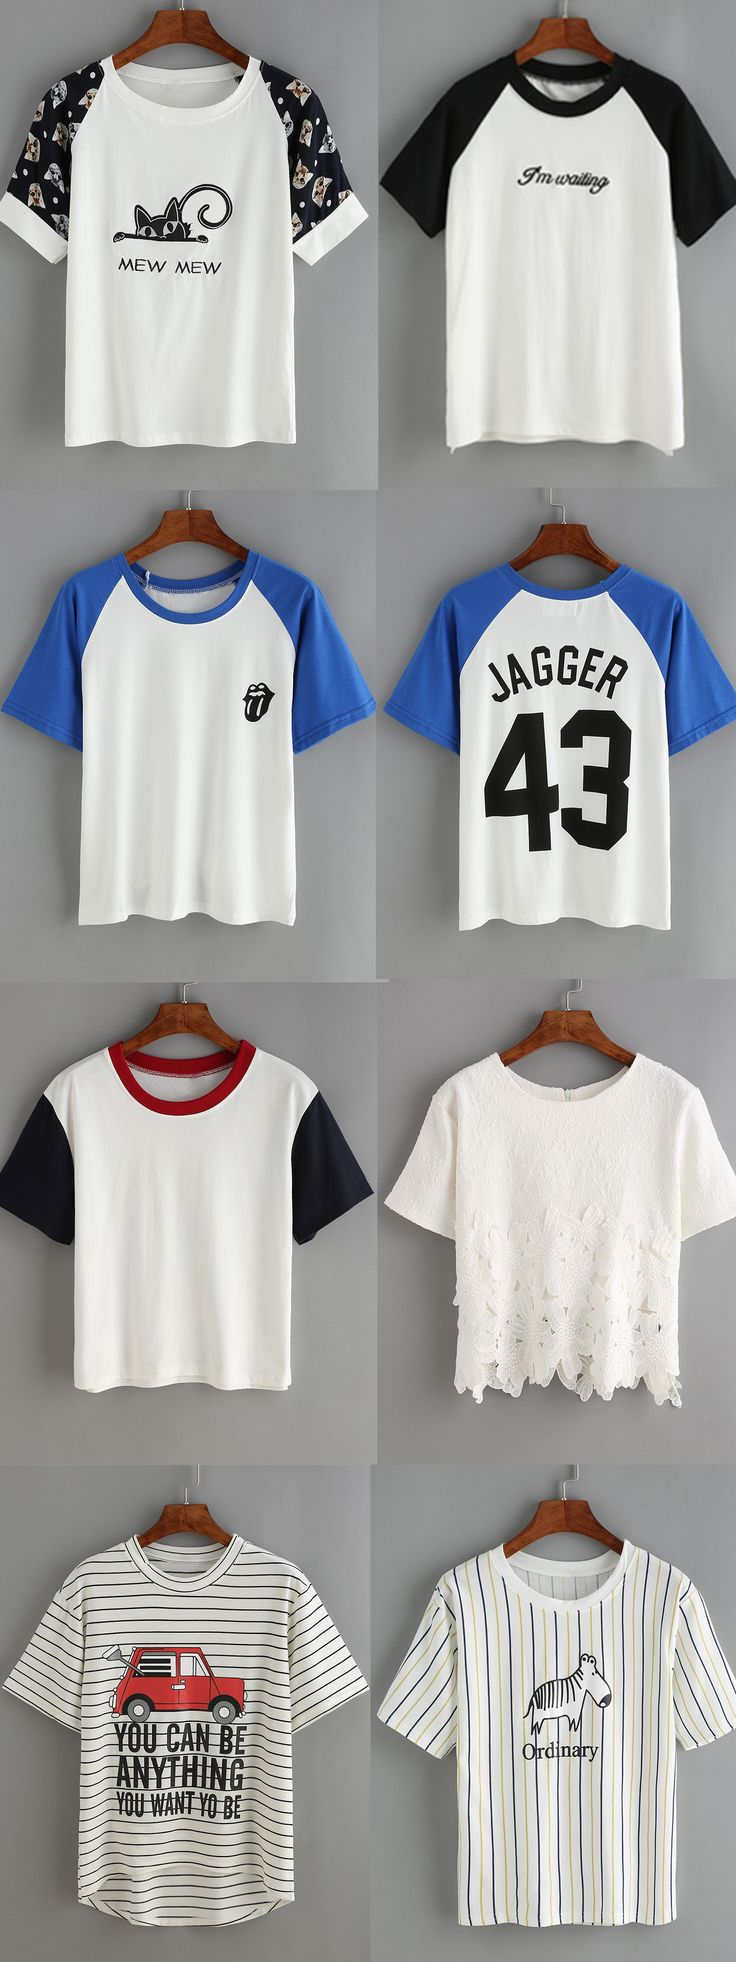 Design your own t-shirt international shipping - Best With Icon Tee Slogan Tee Cute